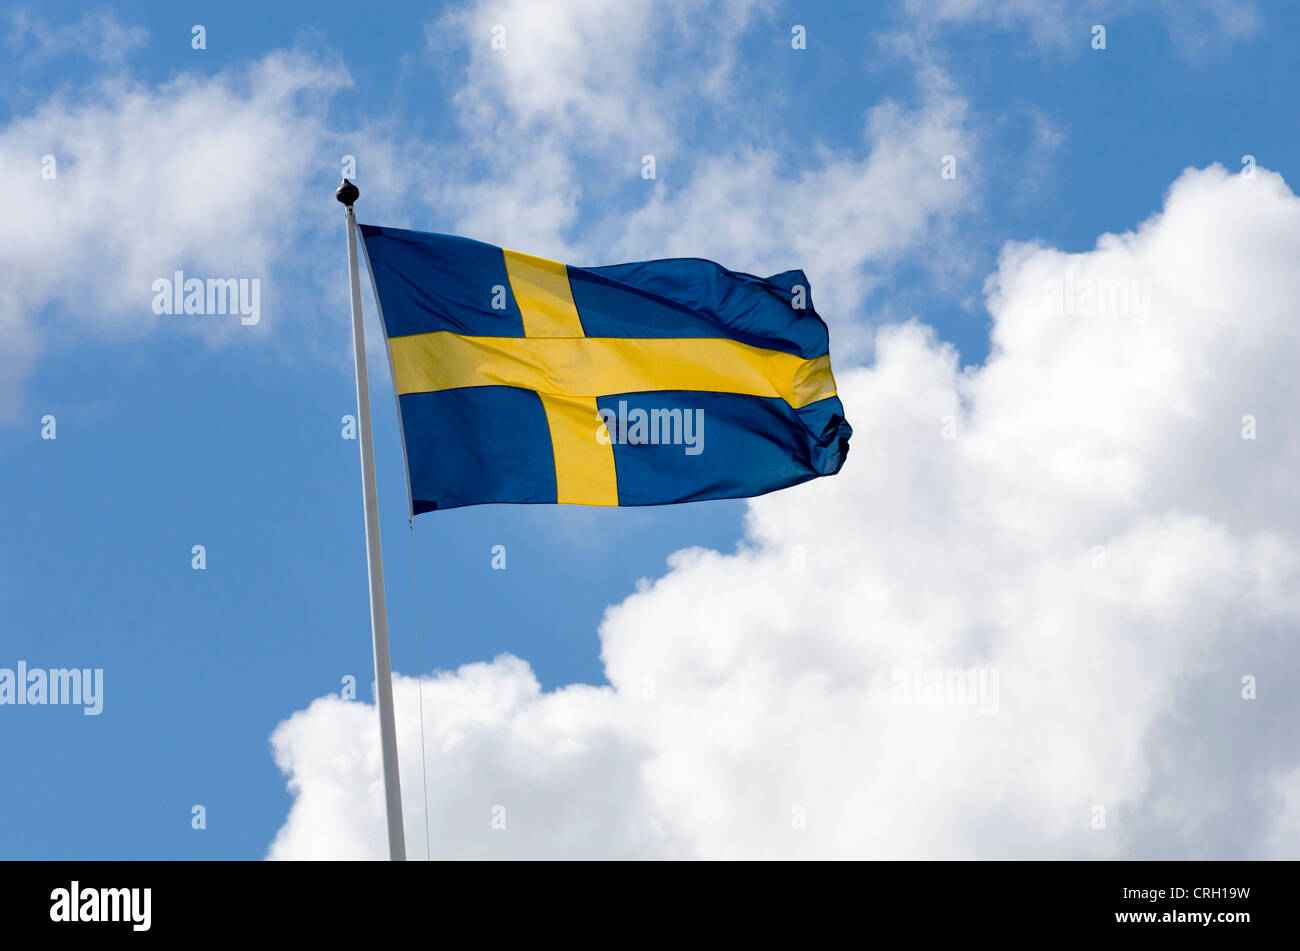 The flag of Sweden - Stock Image